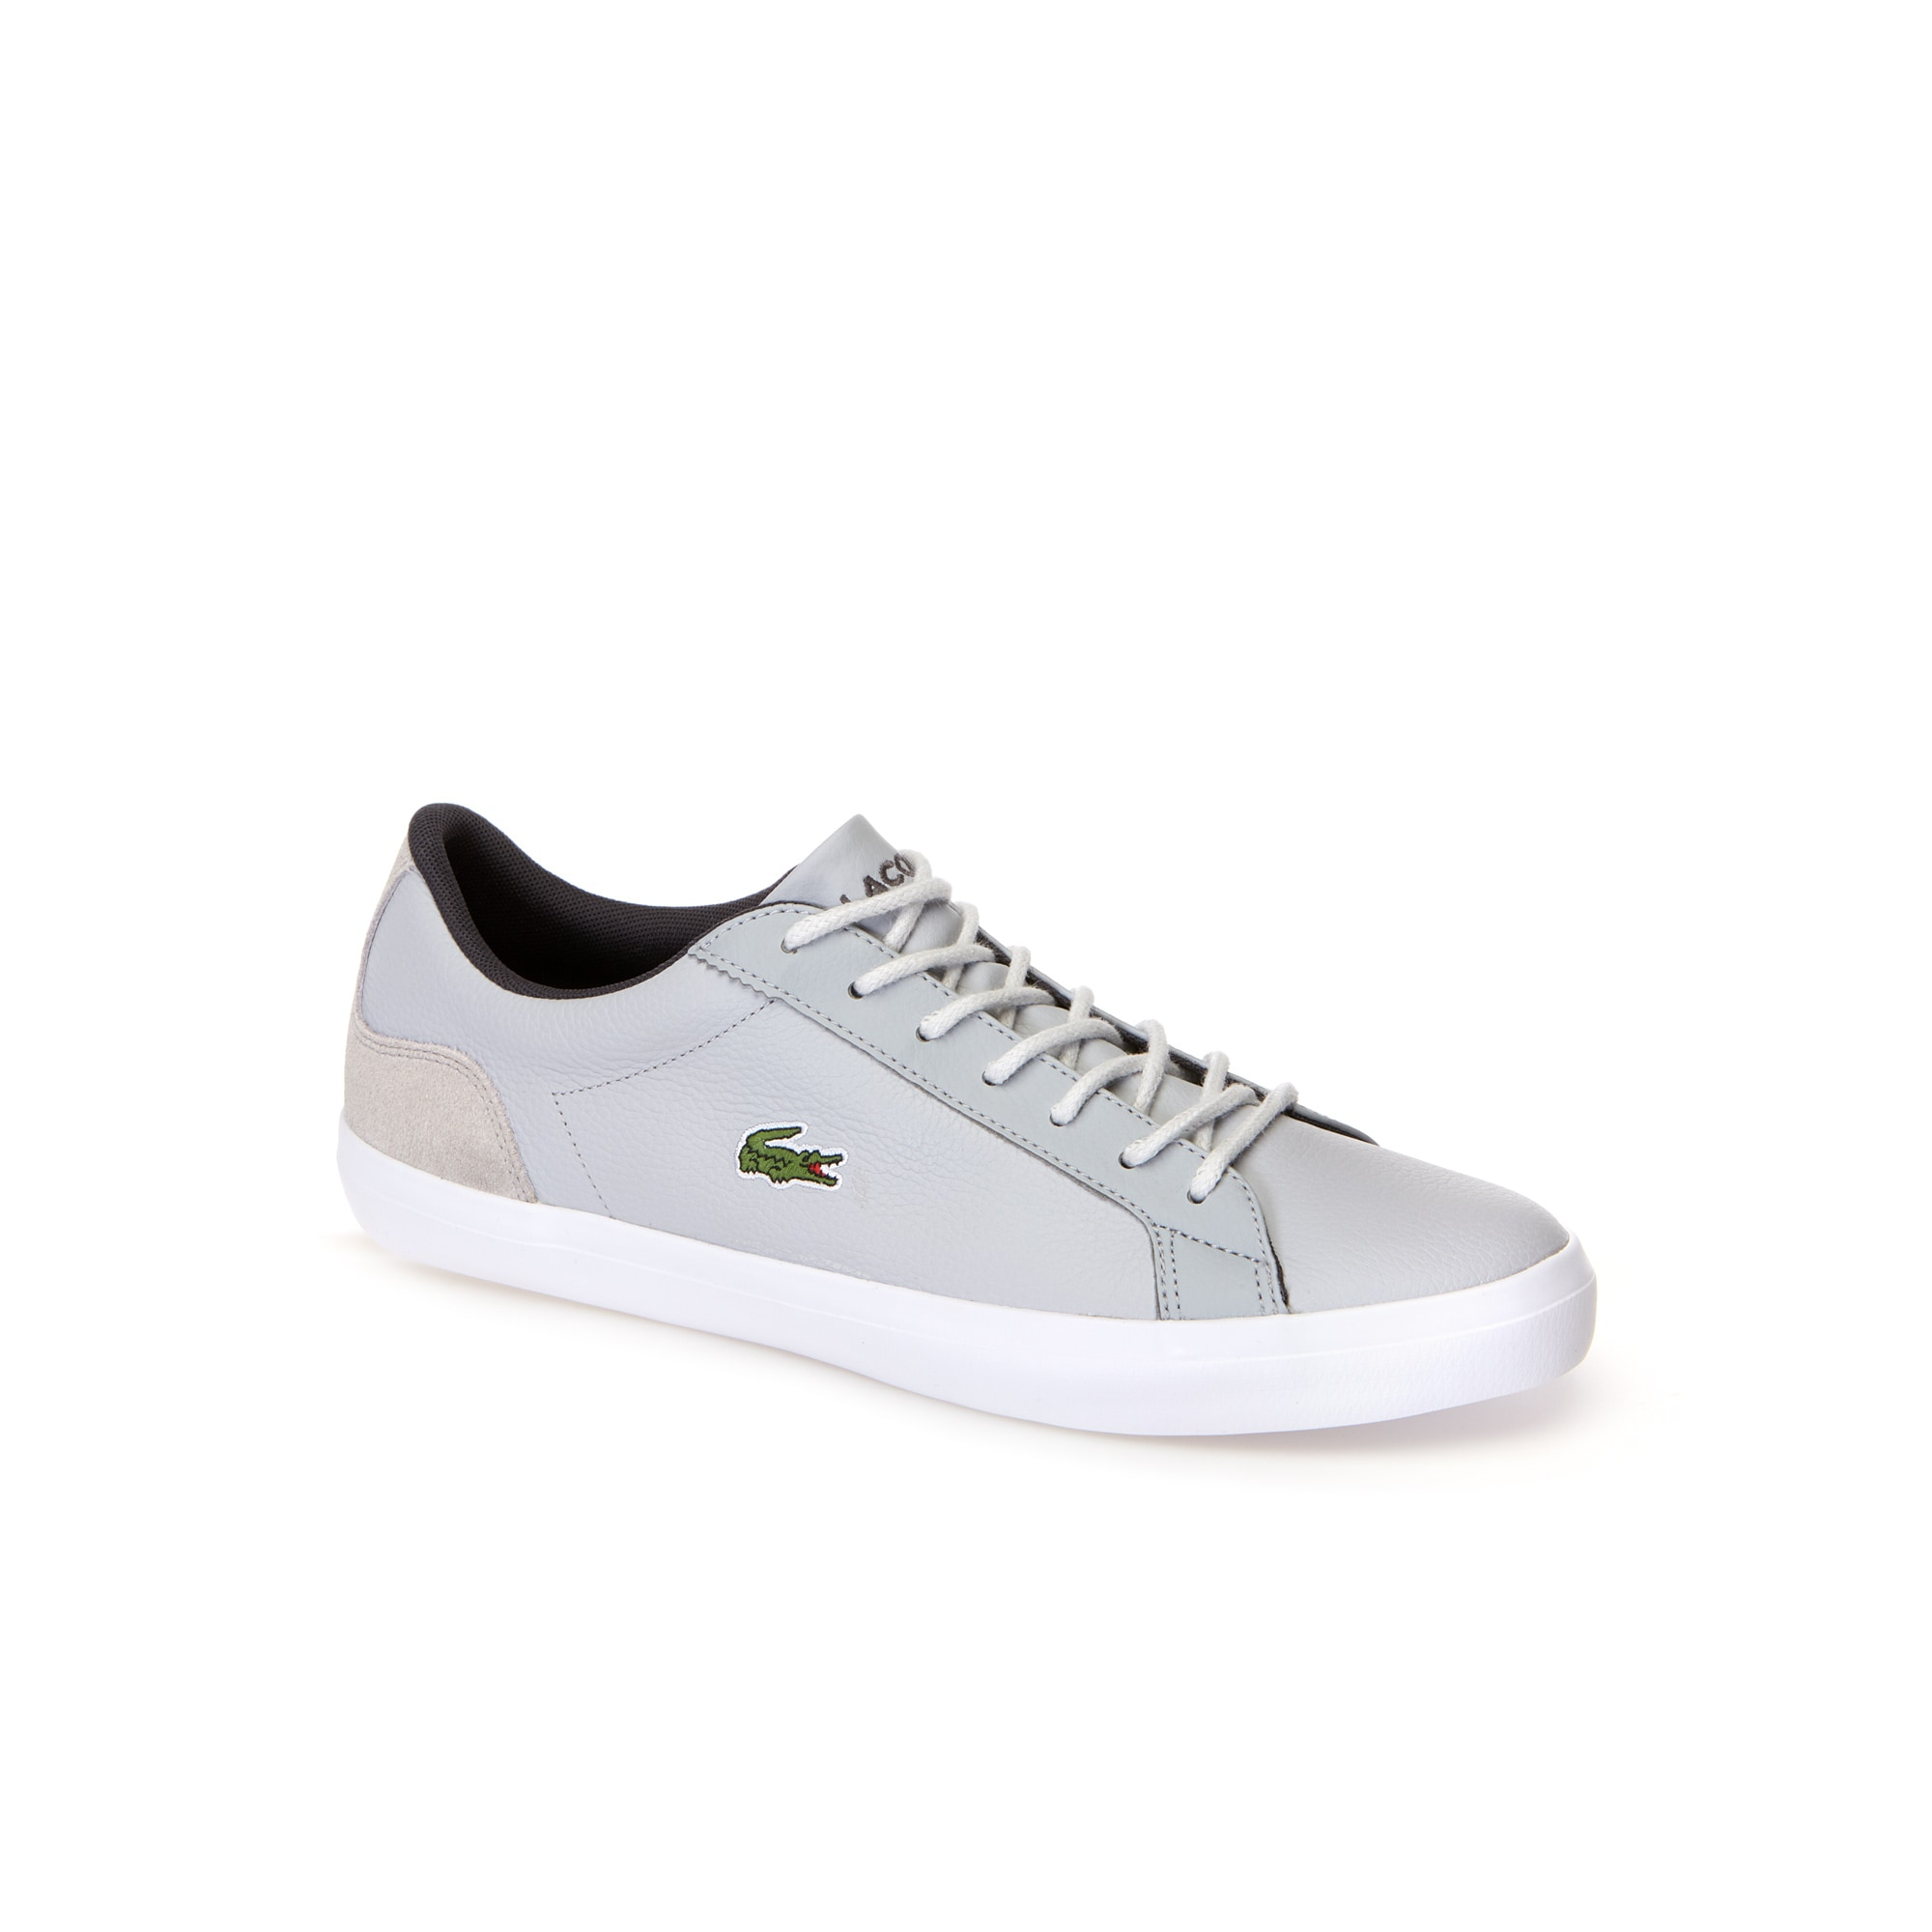 3eae8c211687 Men s Lerond Leather and Suede Trainers ...